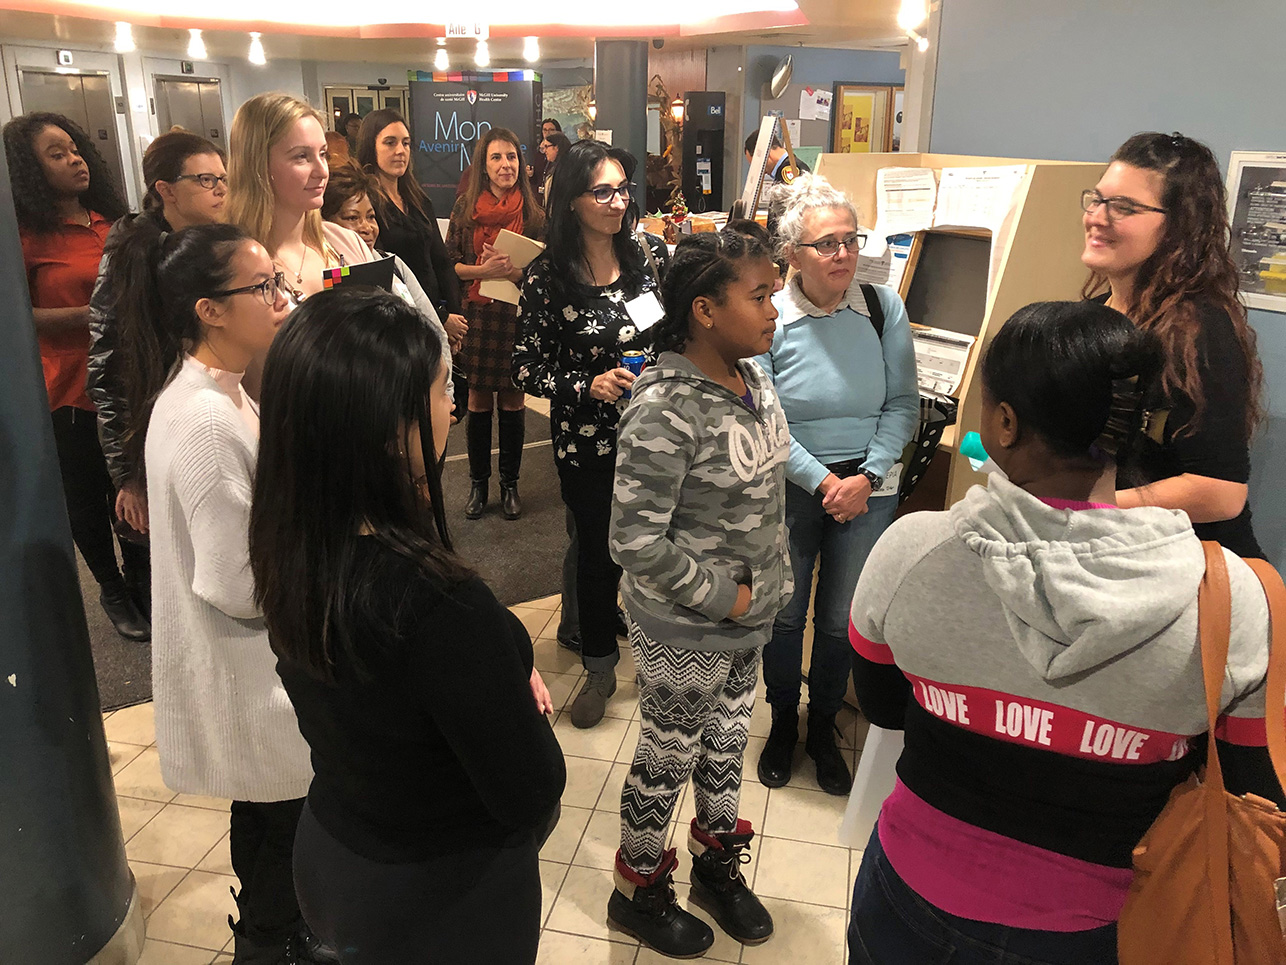 Lachine Hospital opens its doors to new talent